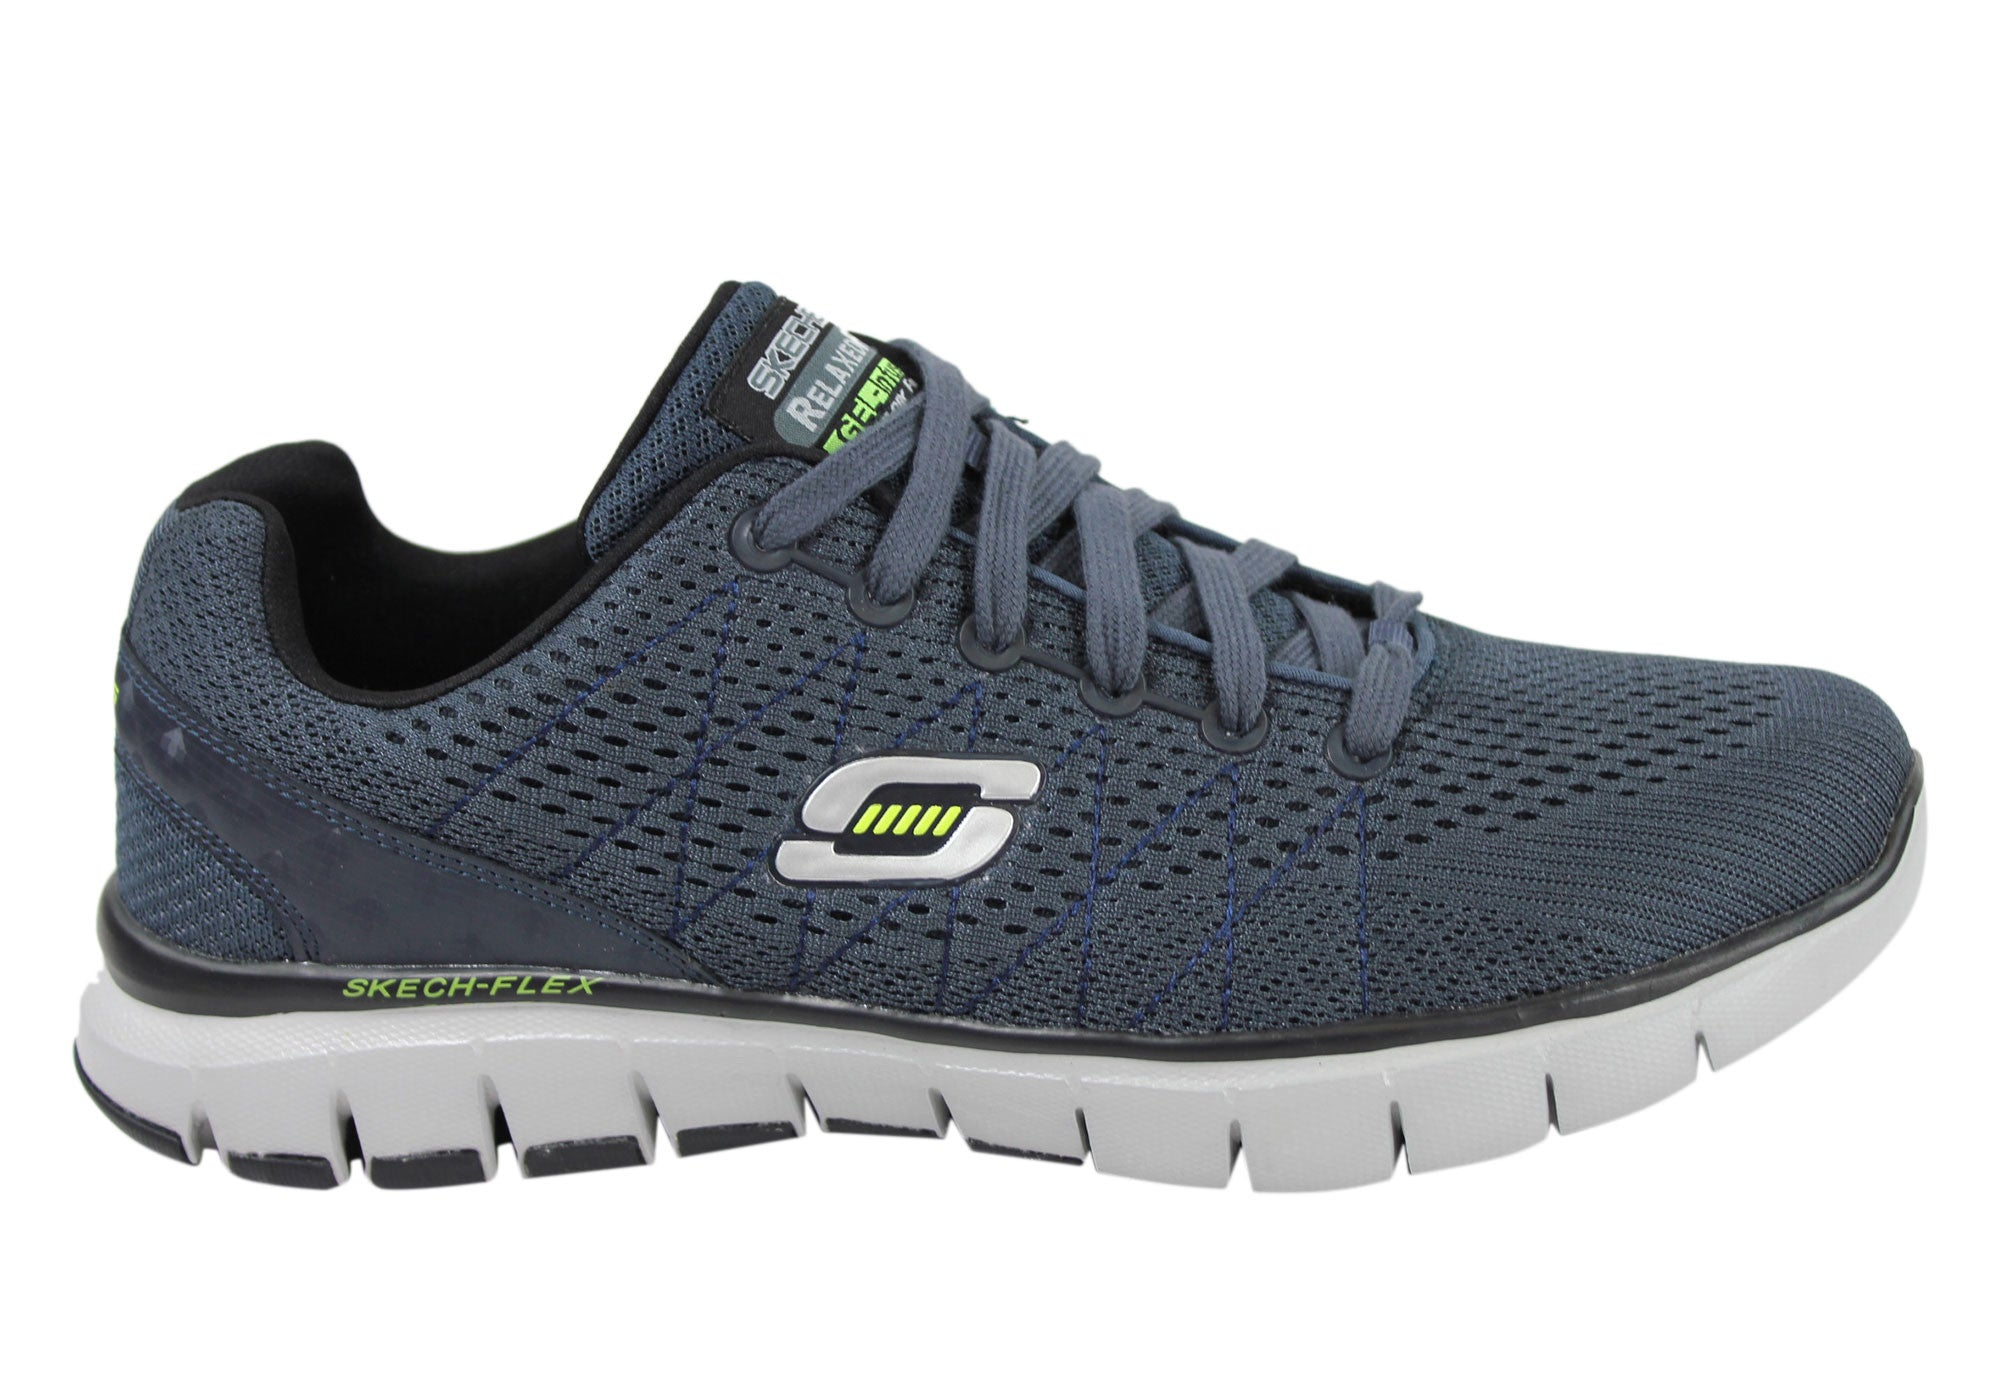 Sketcher Memory Foam Shoes Relaxed Fit